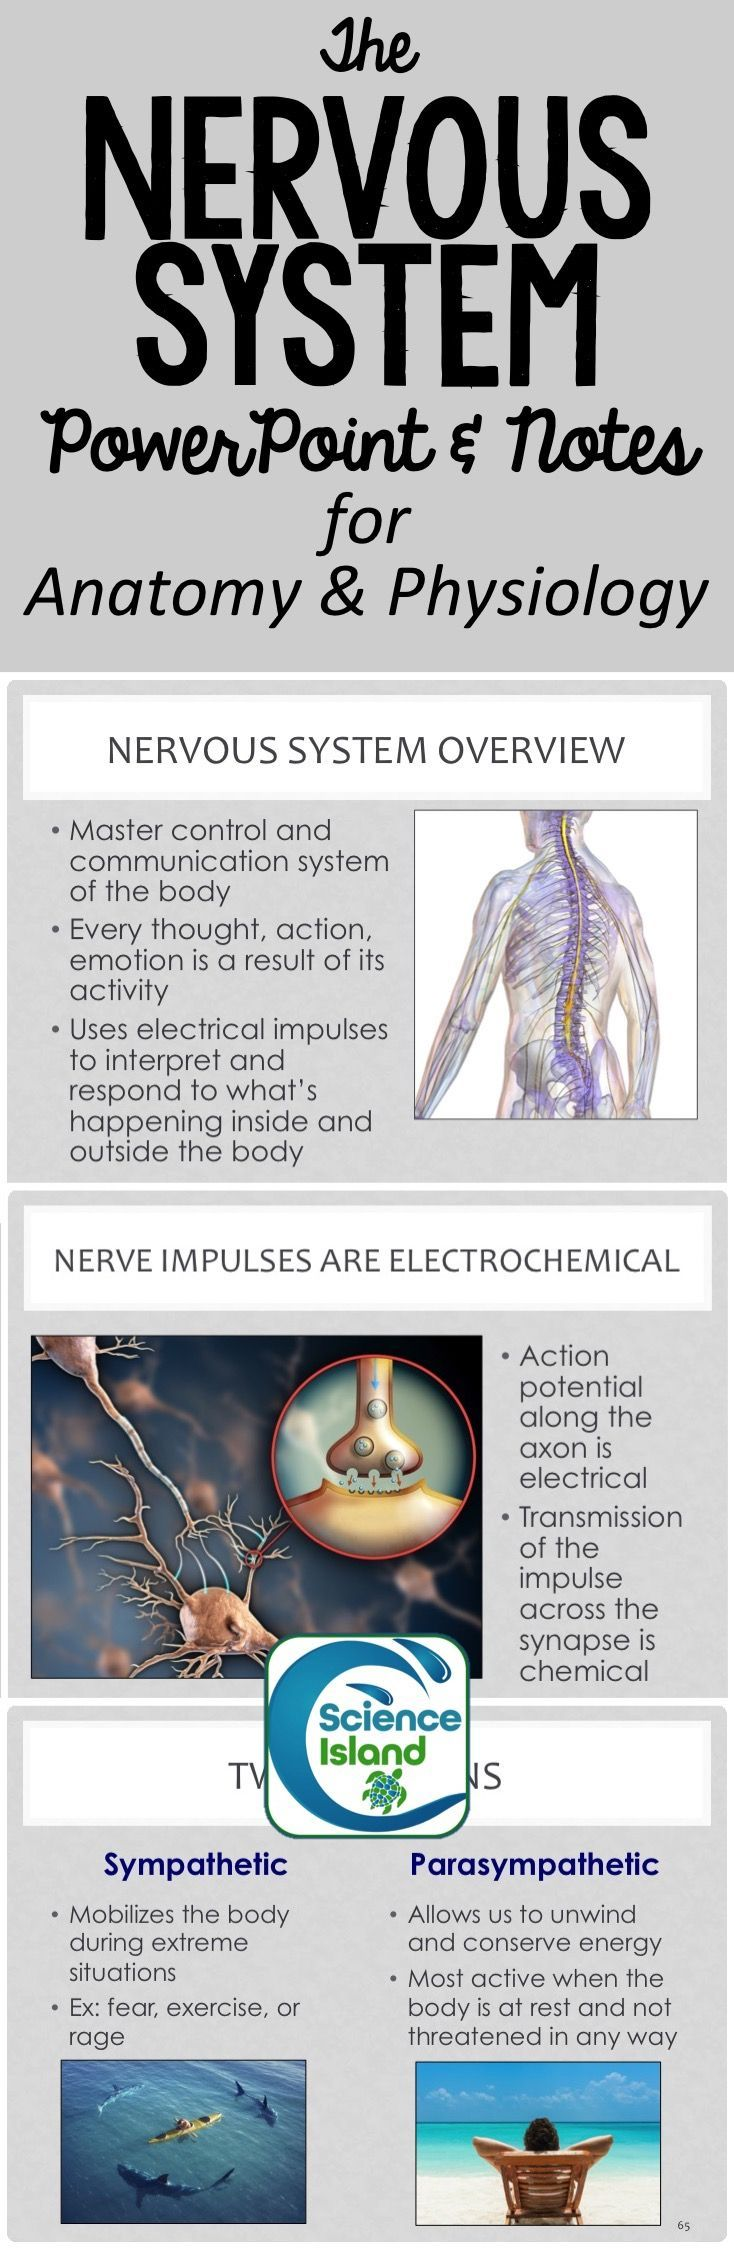 Nervous System PowerPoint and Notes   Pinterest   Image cover ...